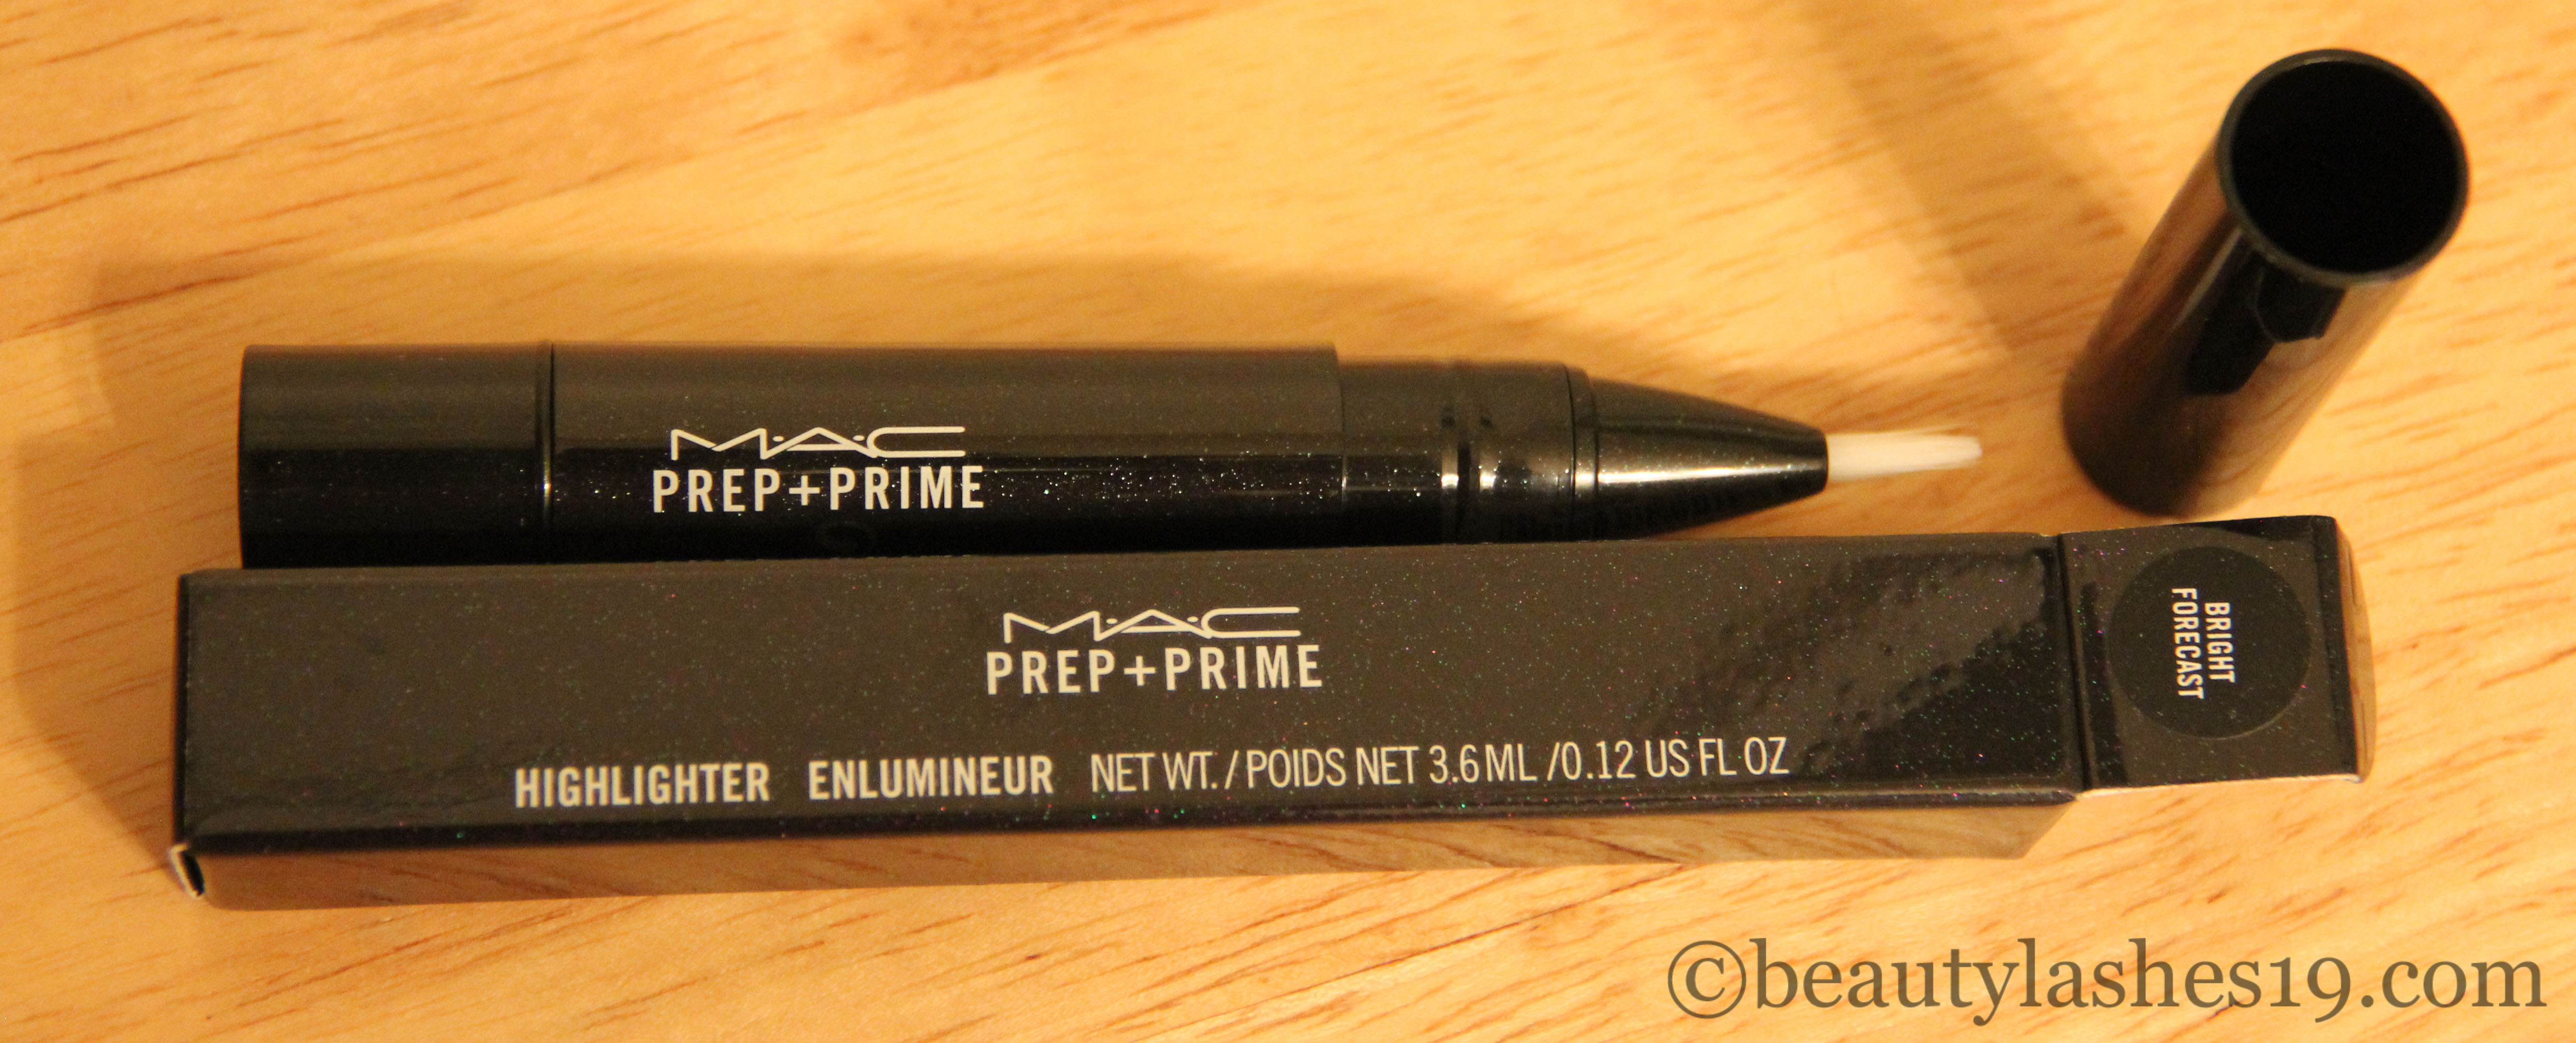 mac prep prime highlighter archives beautylashes19 sneha. Black Bedroom Furniture Sets. Home Design Ideas